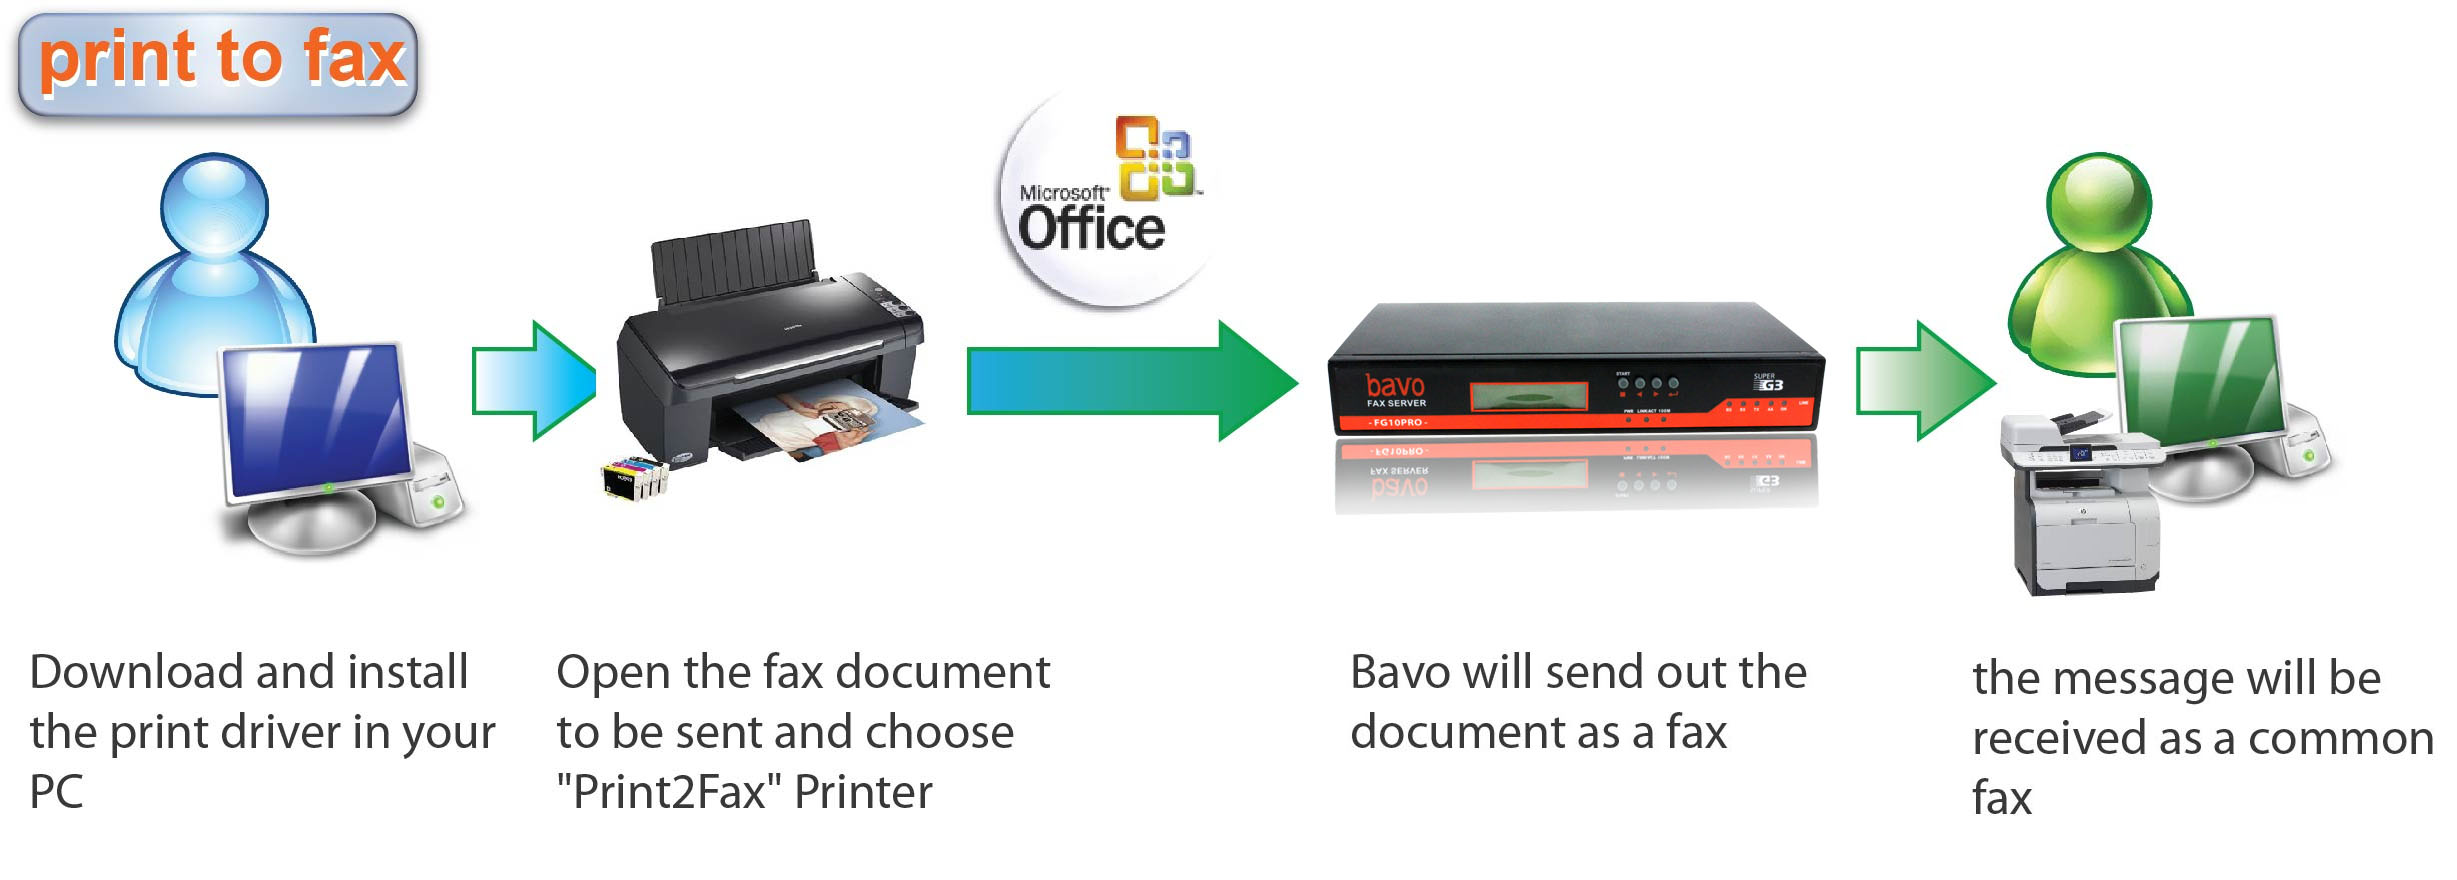 Image about Print to fax - have a fun